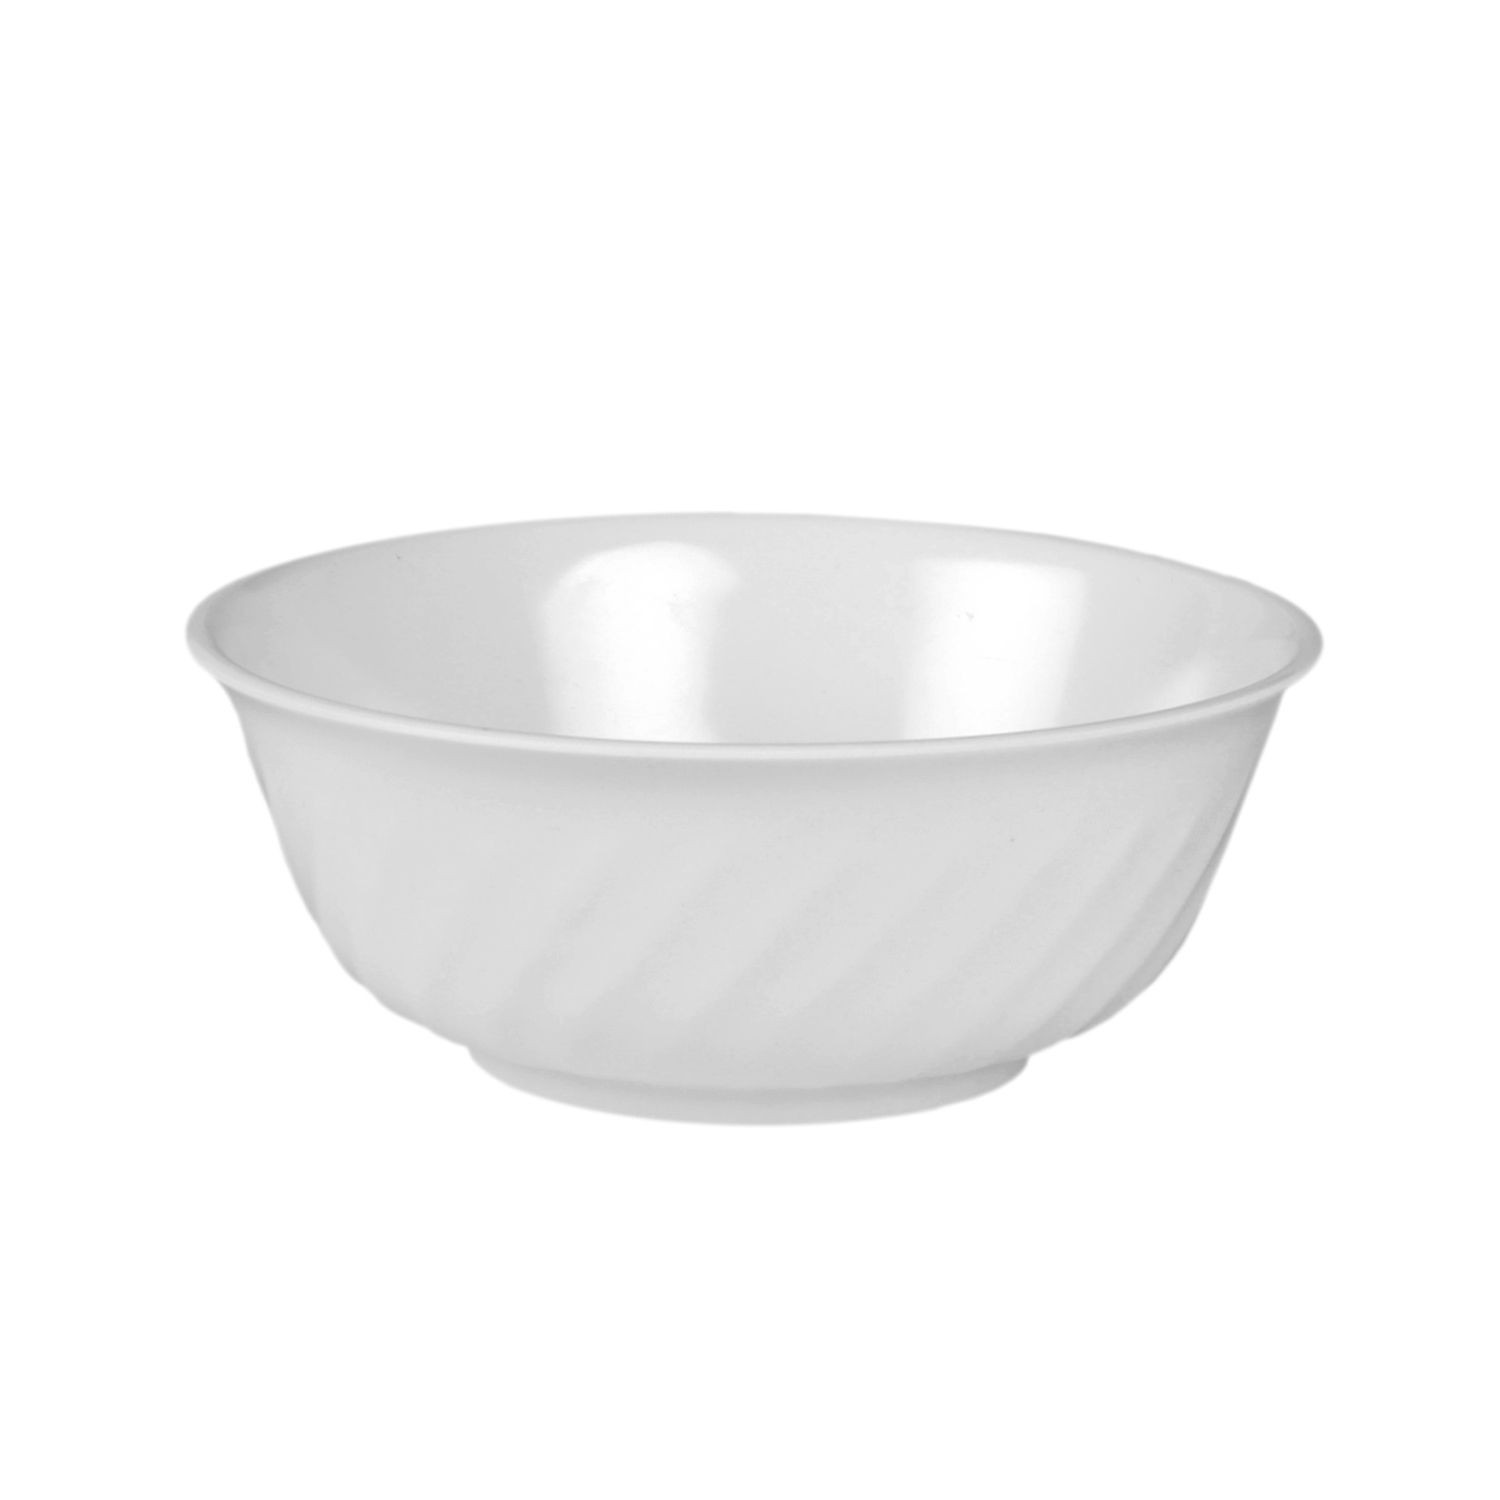 Thunder Group 5306TW Imperial Swirl Bowl 21 oz.